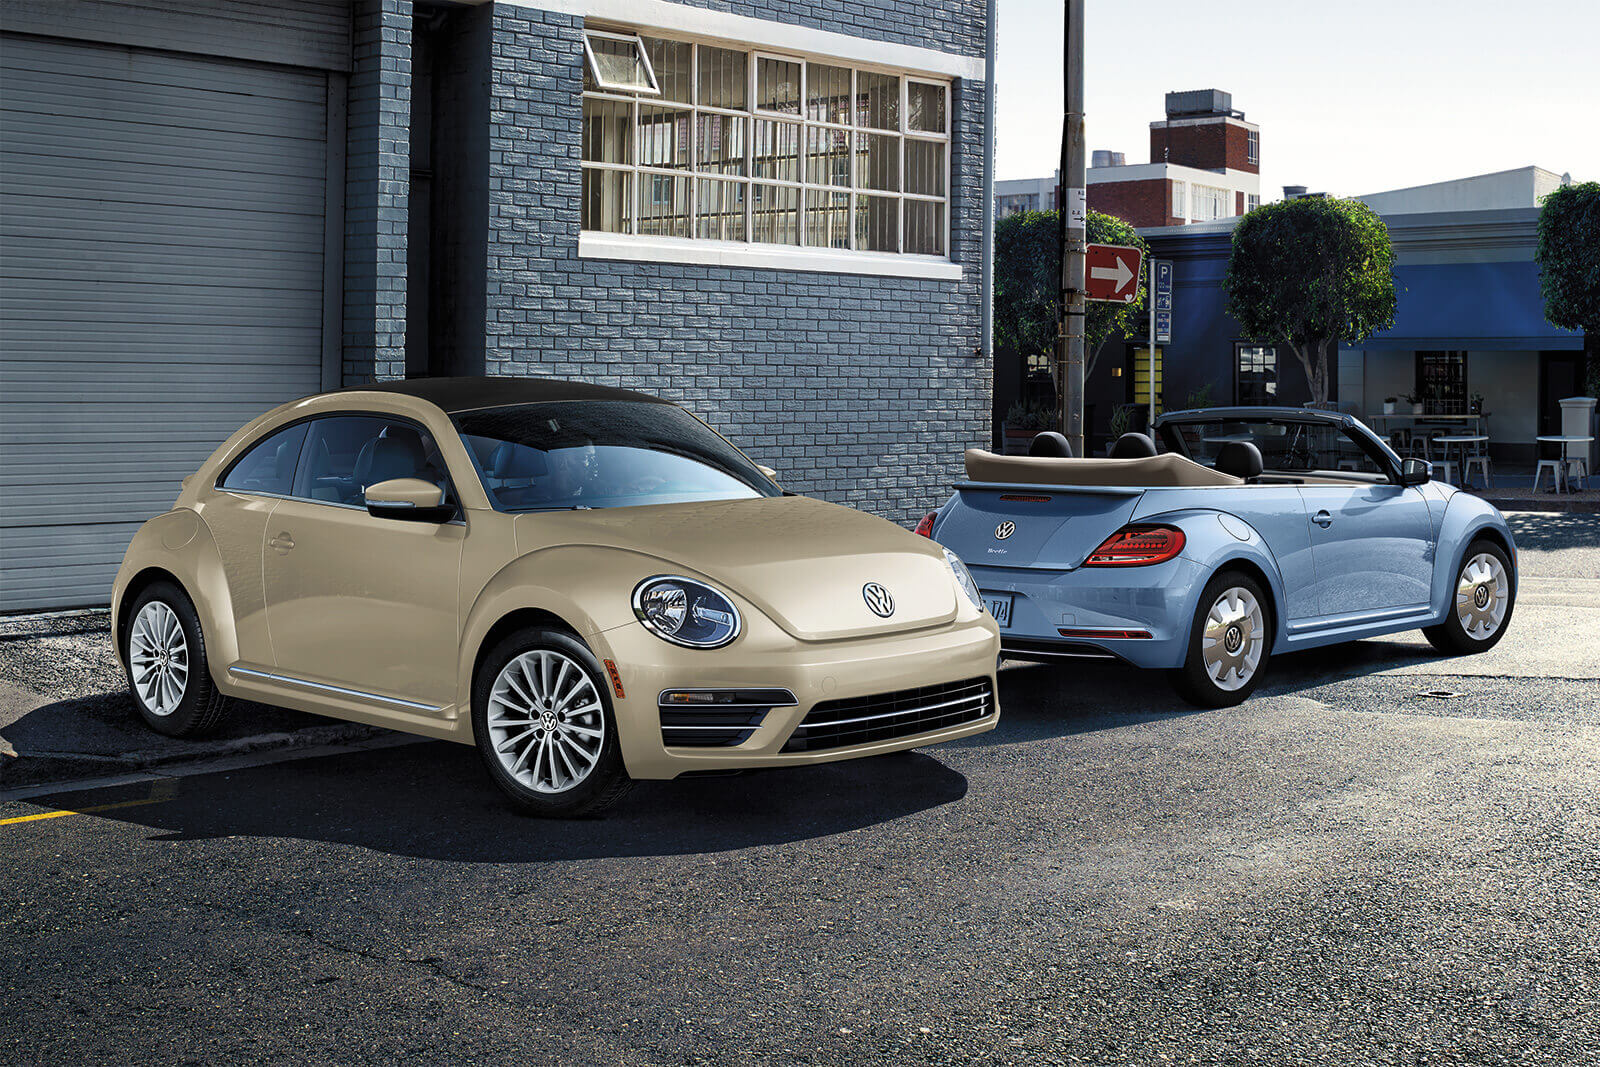 2019 Volkswagen Beetle Blue and Tan Parked Exterior